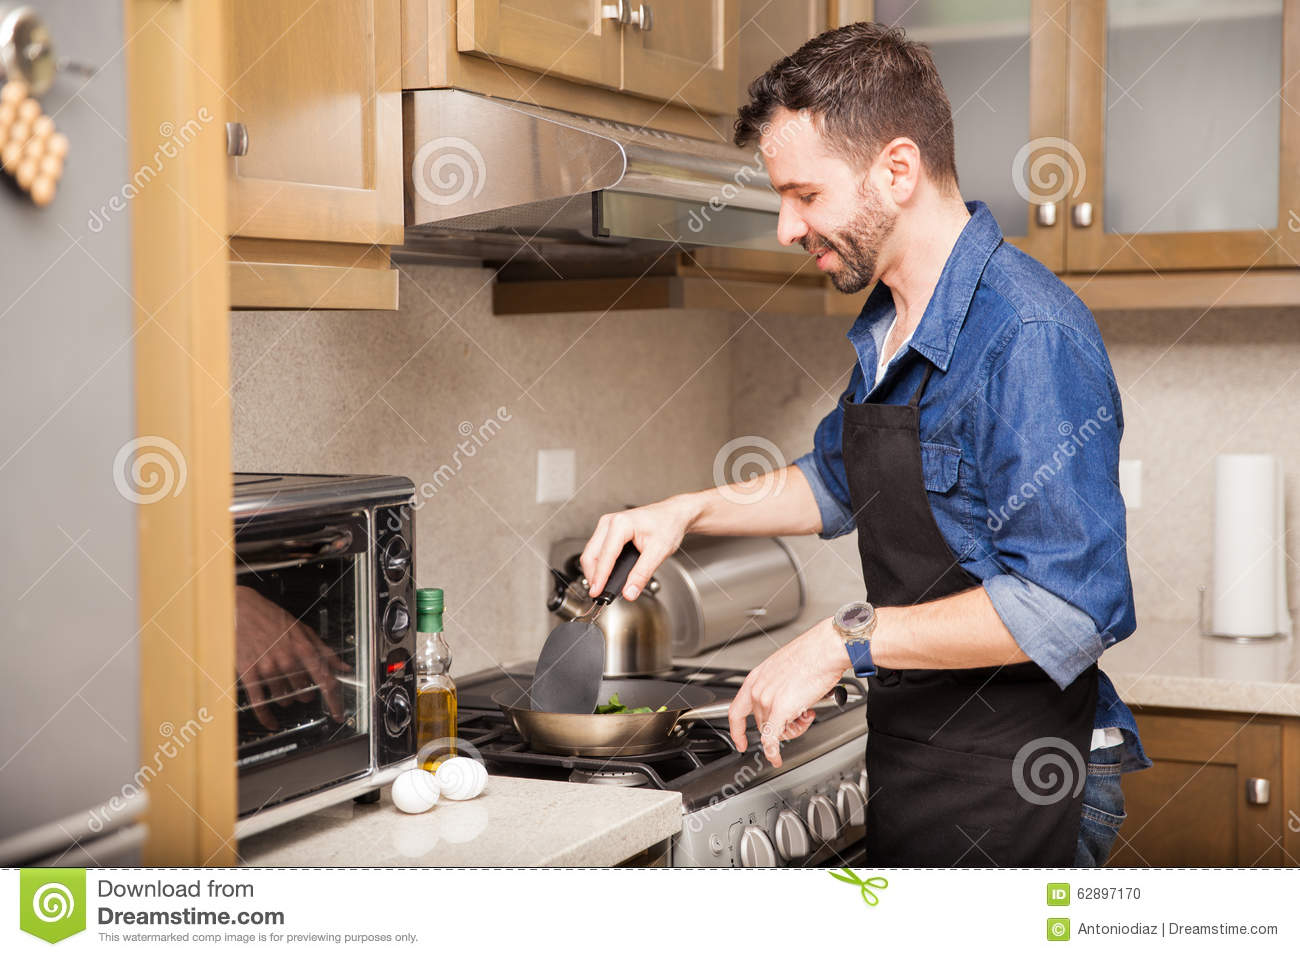 Man Cooking Breakfast At Home Stock Photo - Image: 62897170